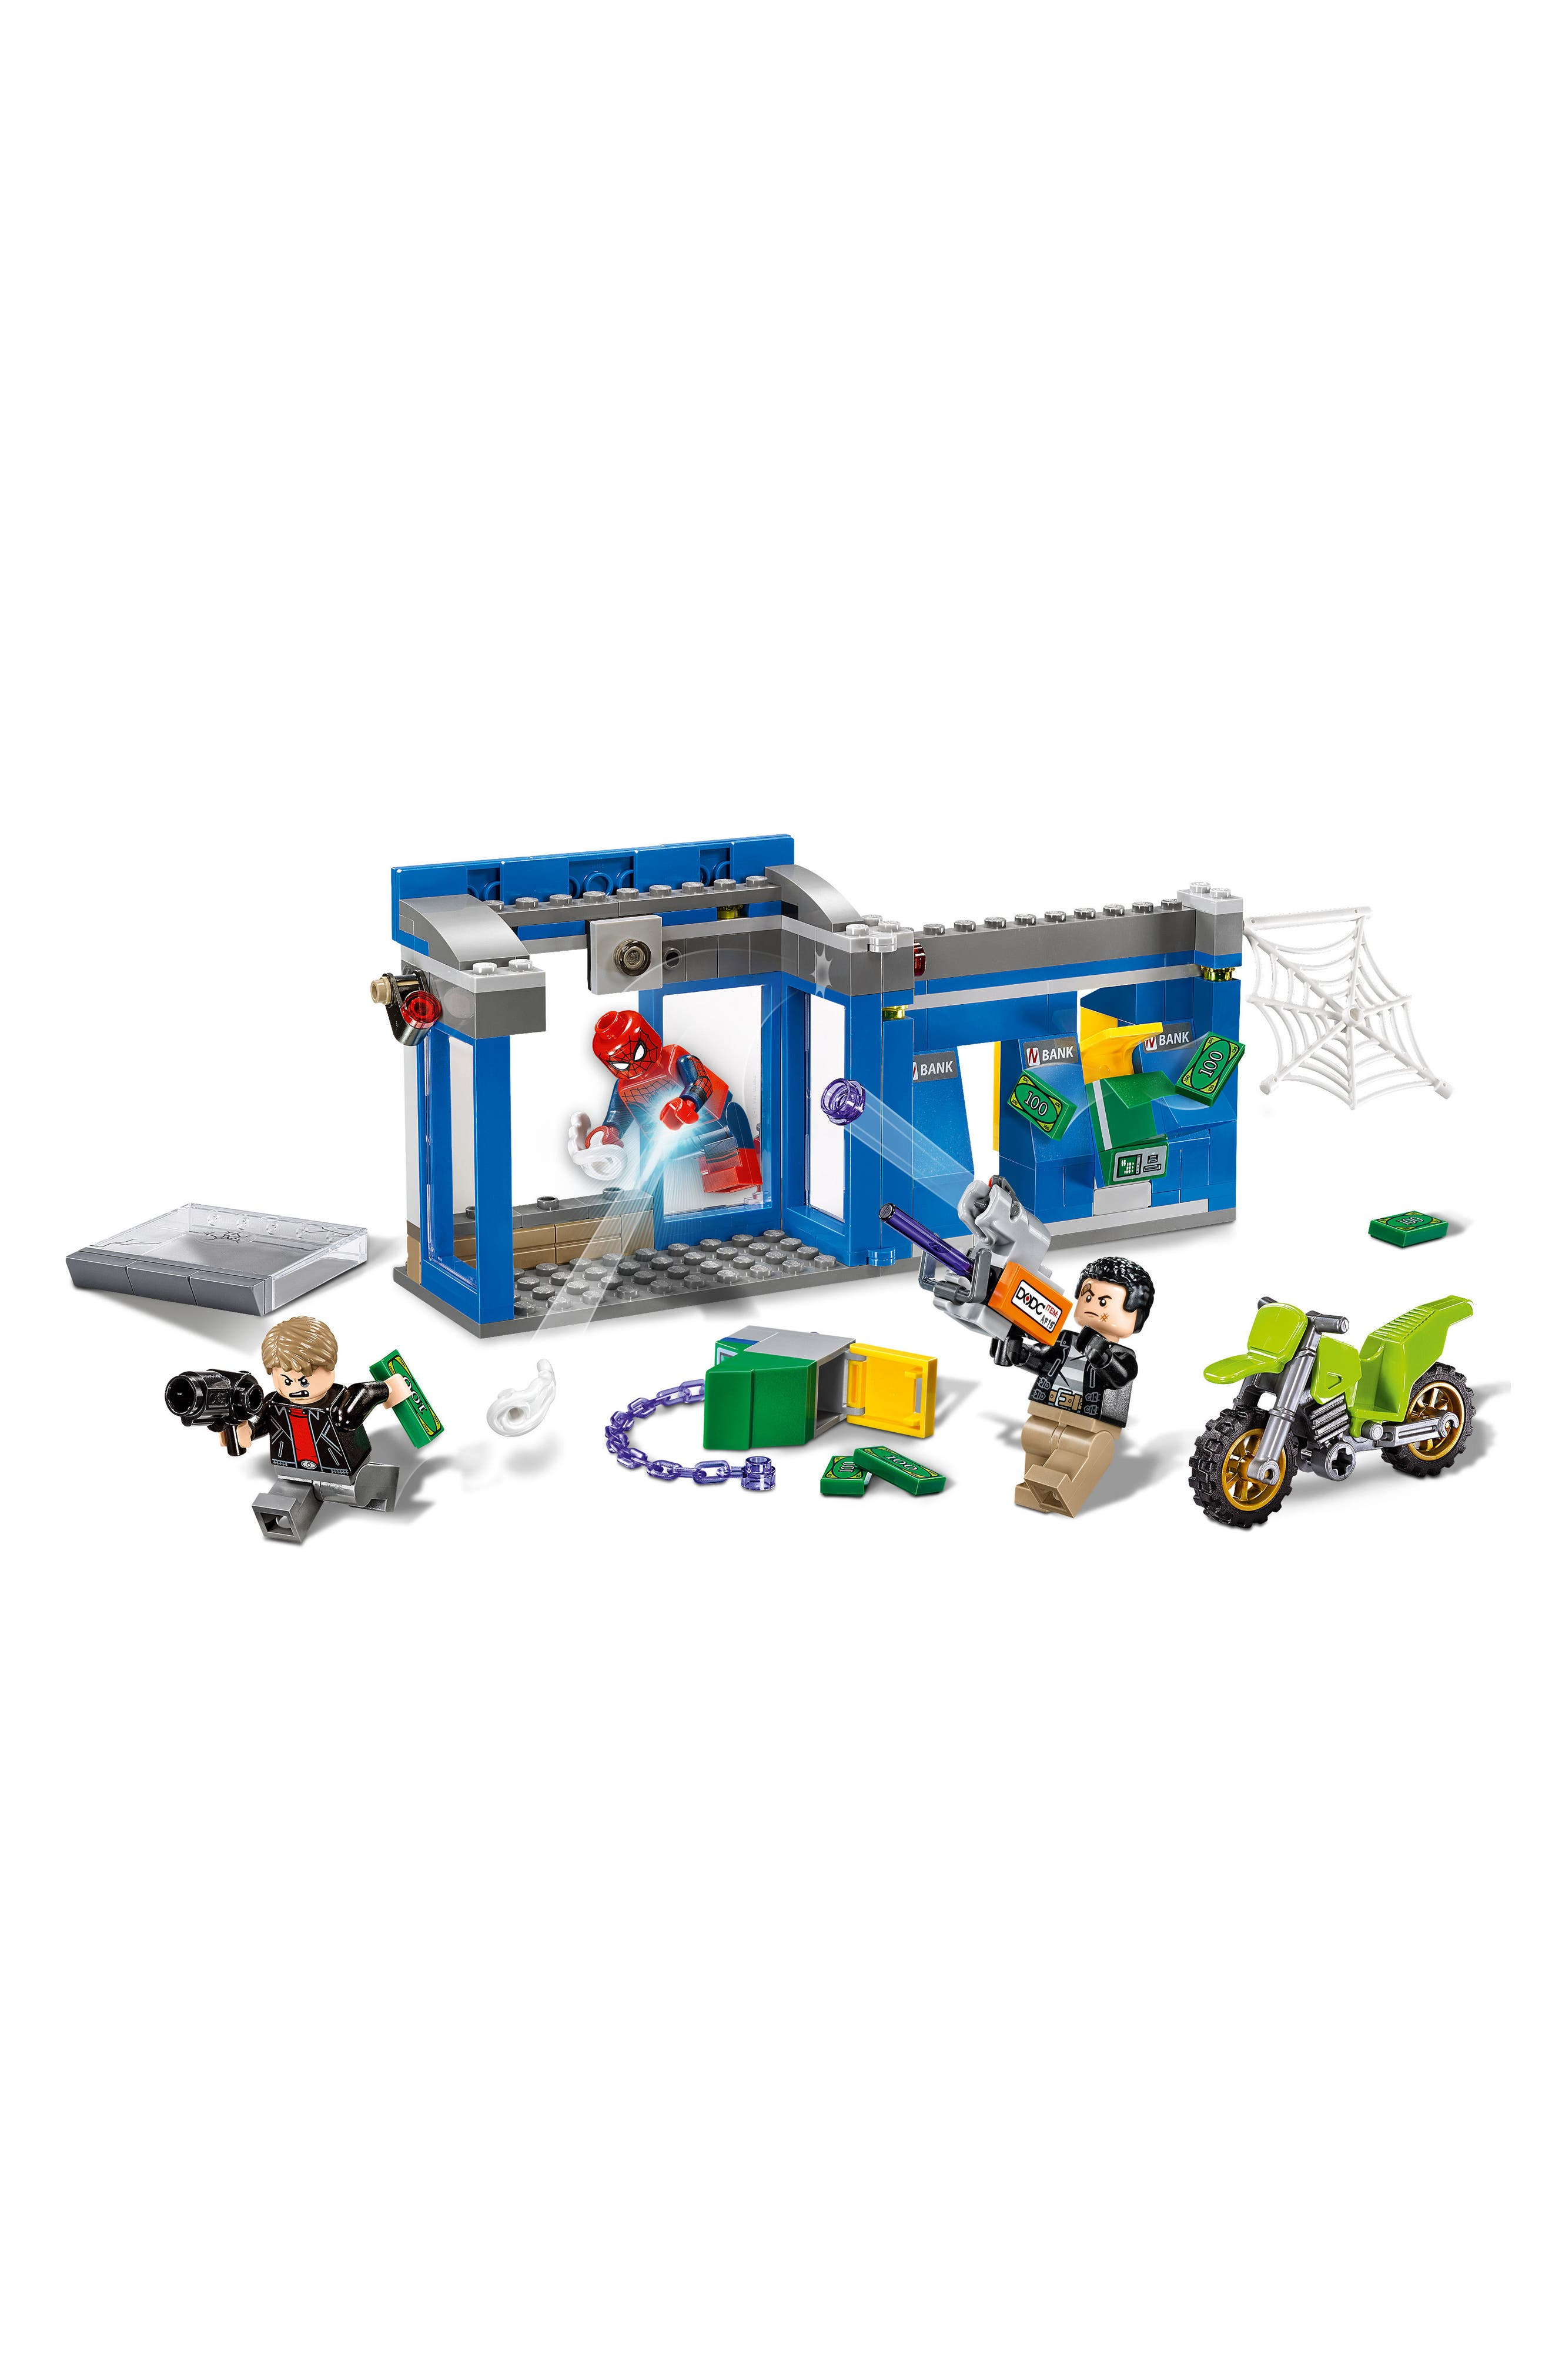 Marvel Super Heroes Spider-Man ATM Heist Battle Set - 76082,                             Alternate thumbnail 3, color,                             400